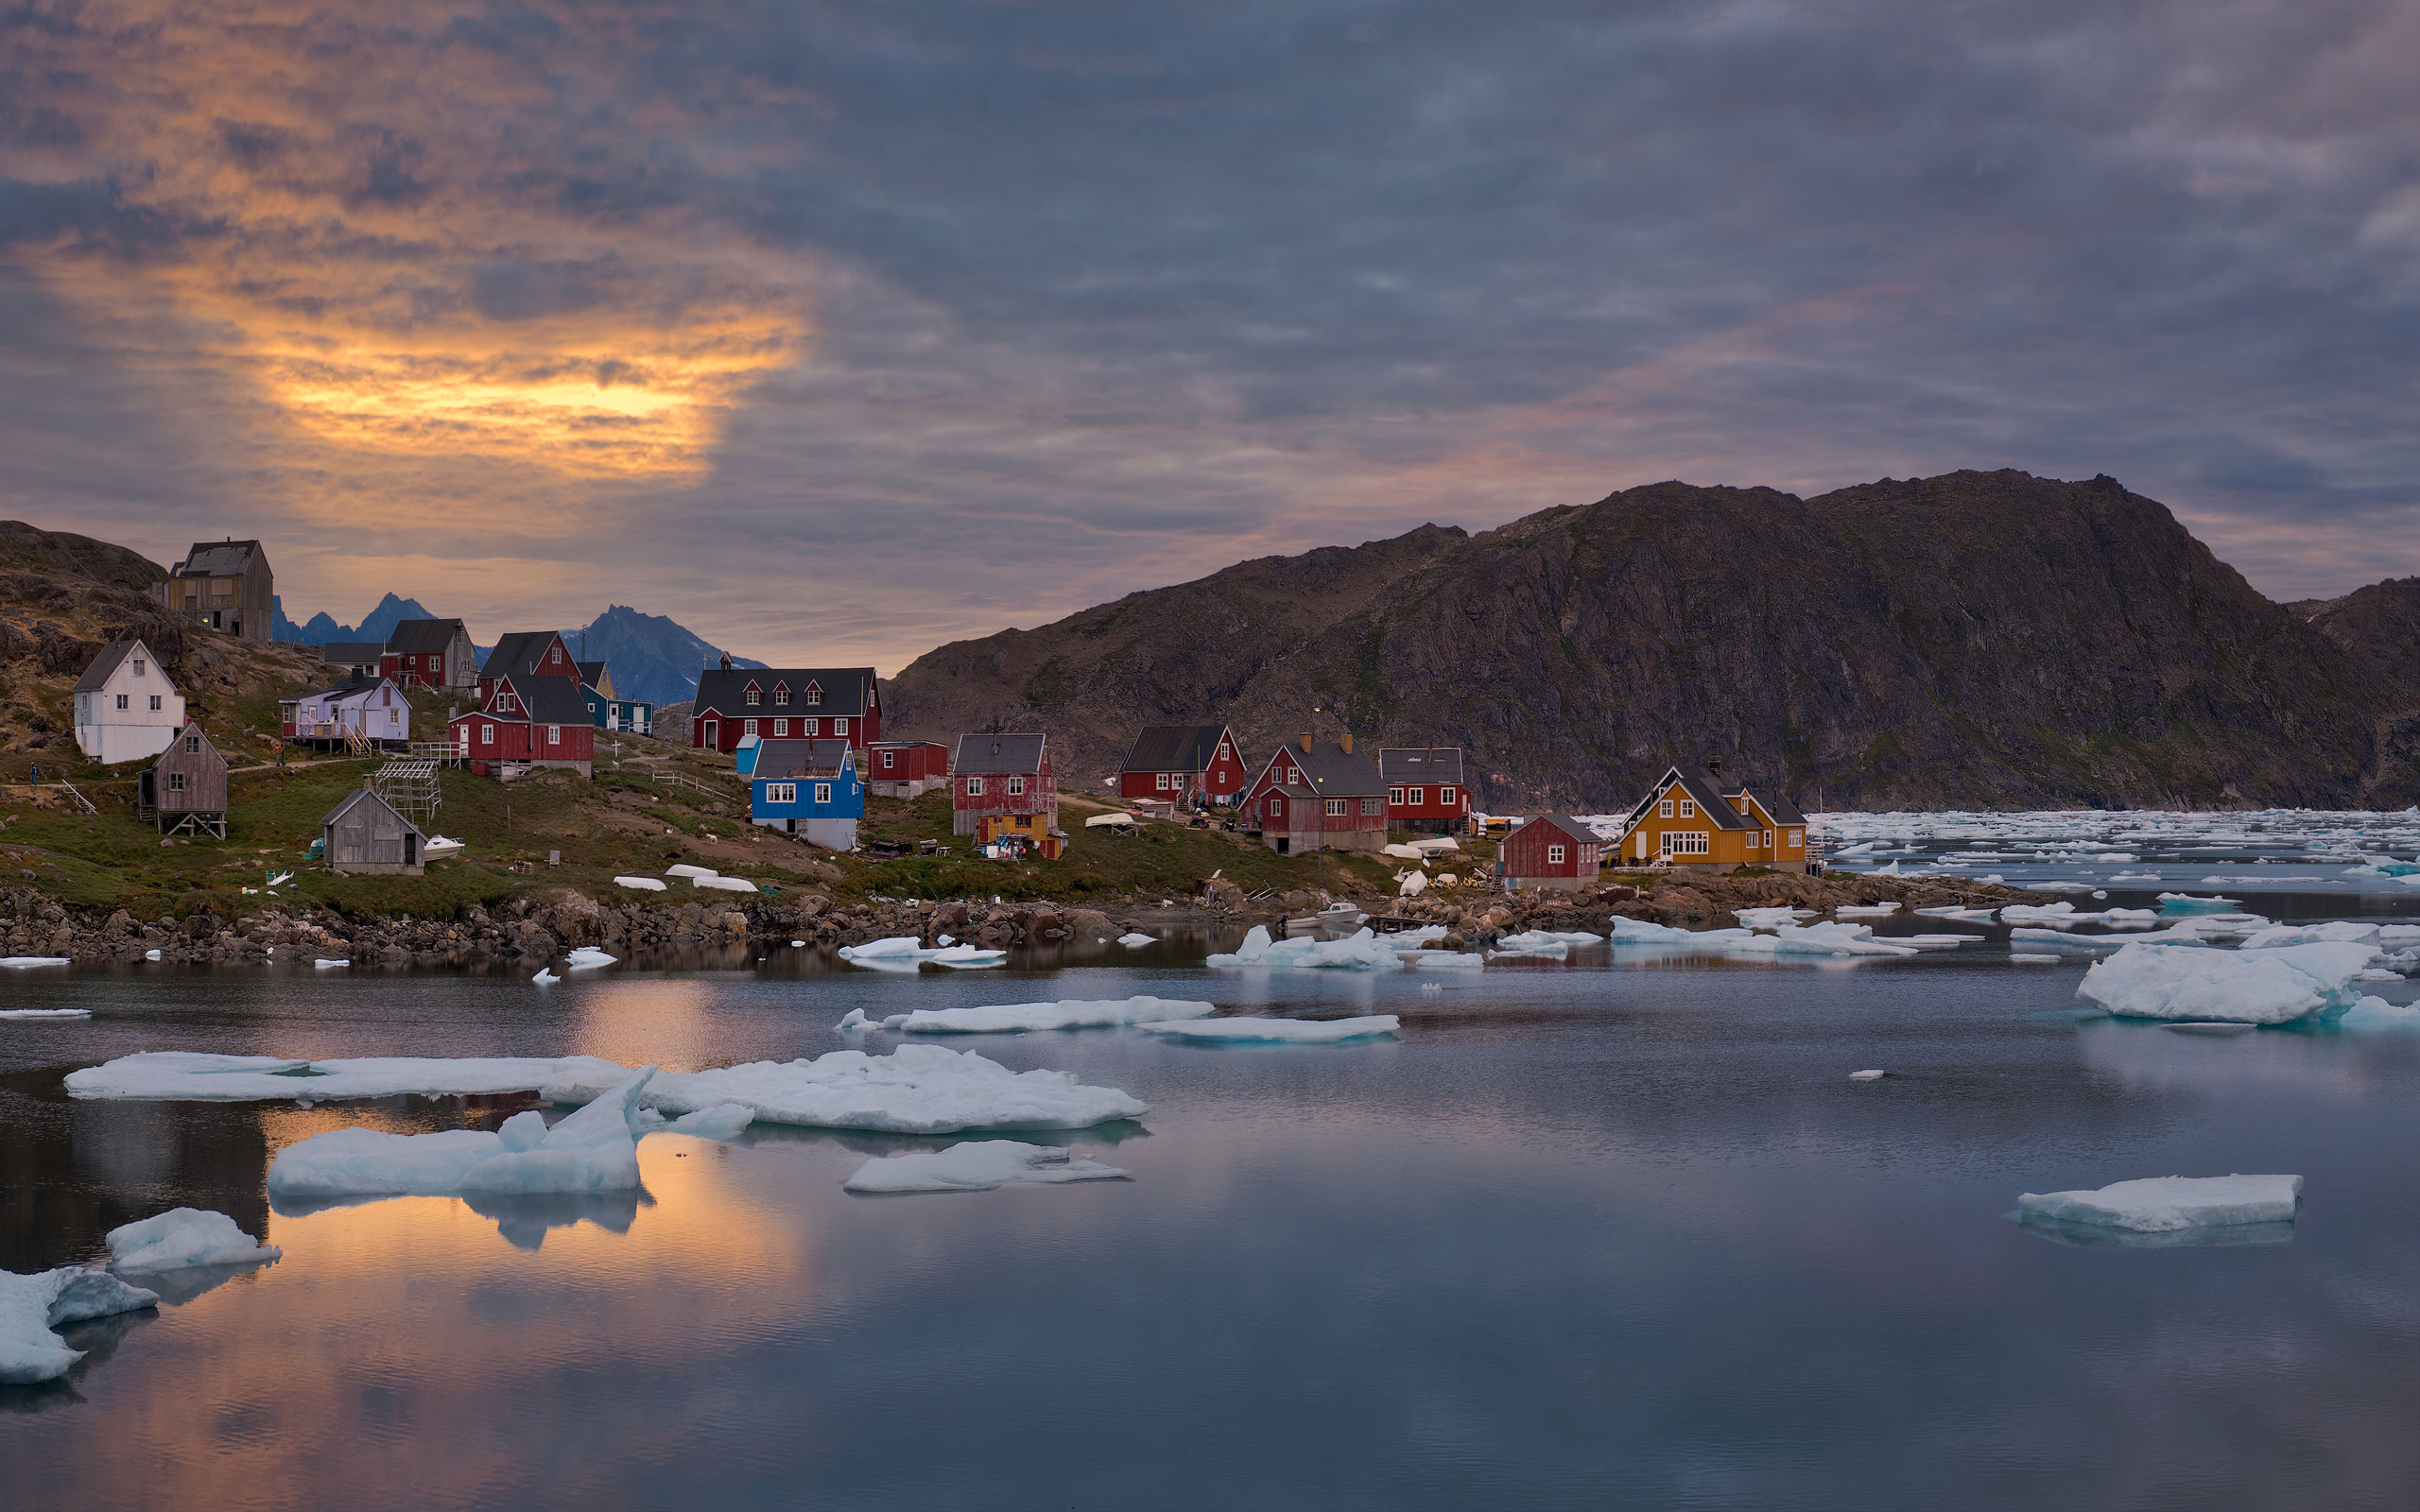 Muted sunset over settlement of Kulusuk. Torsuut Tunoq sound, Southeastern Greenland. - Greenland-Iceberg-Factory-1 - Mike Reyfman Photography